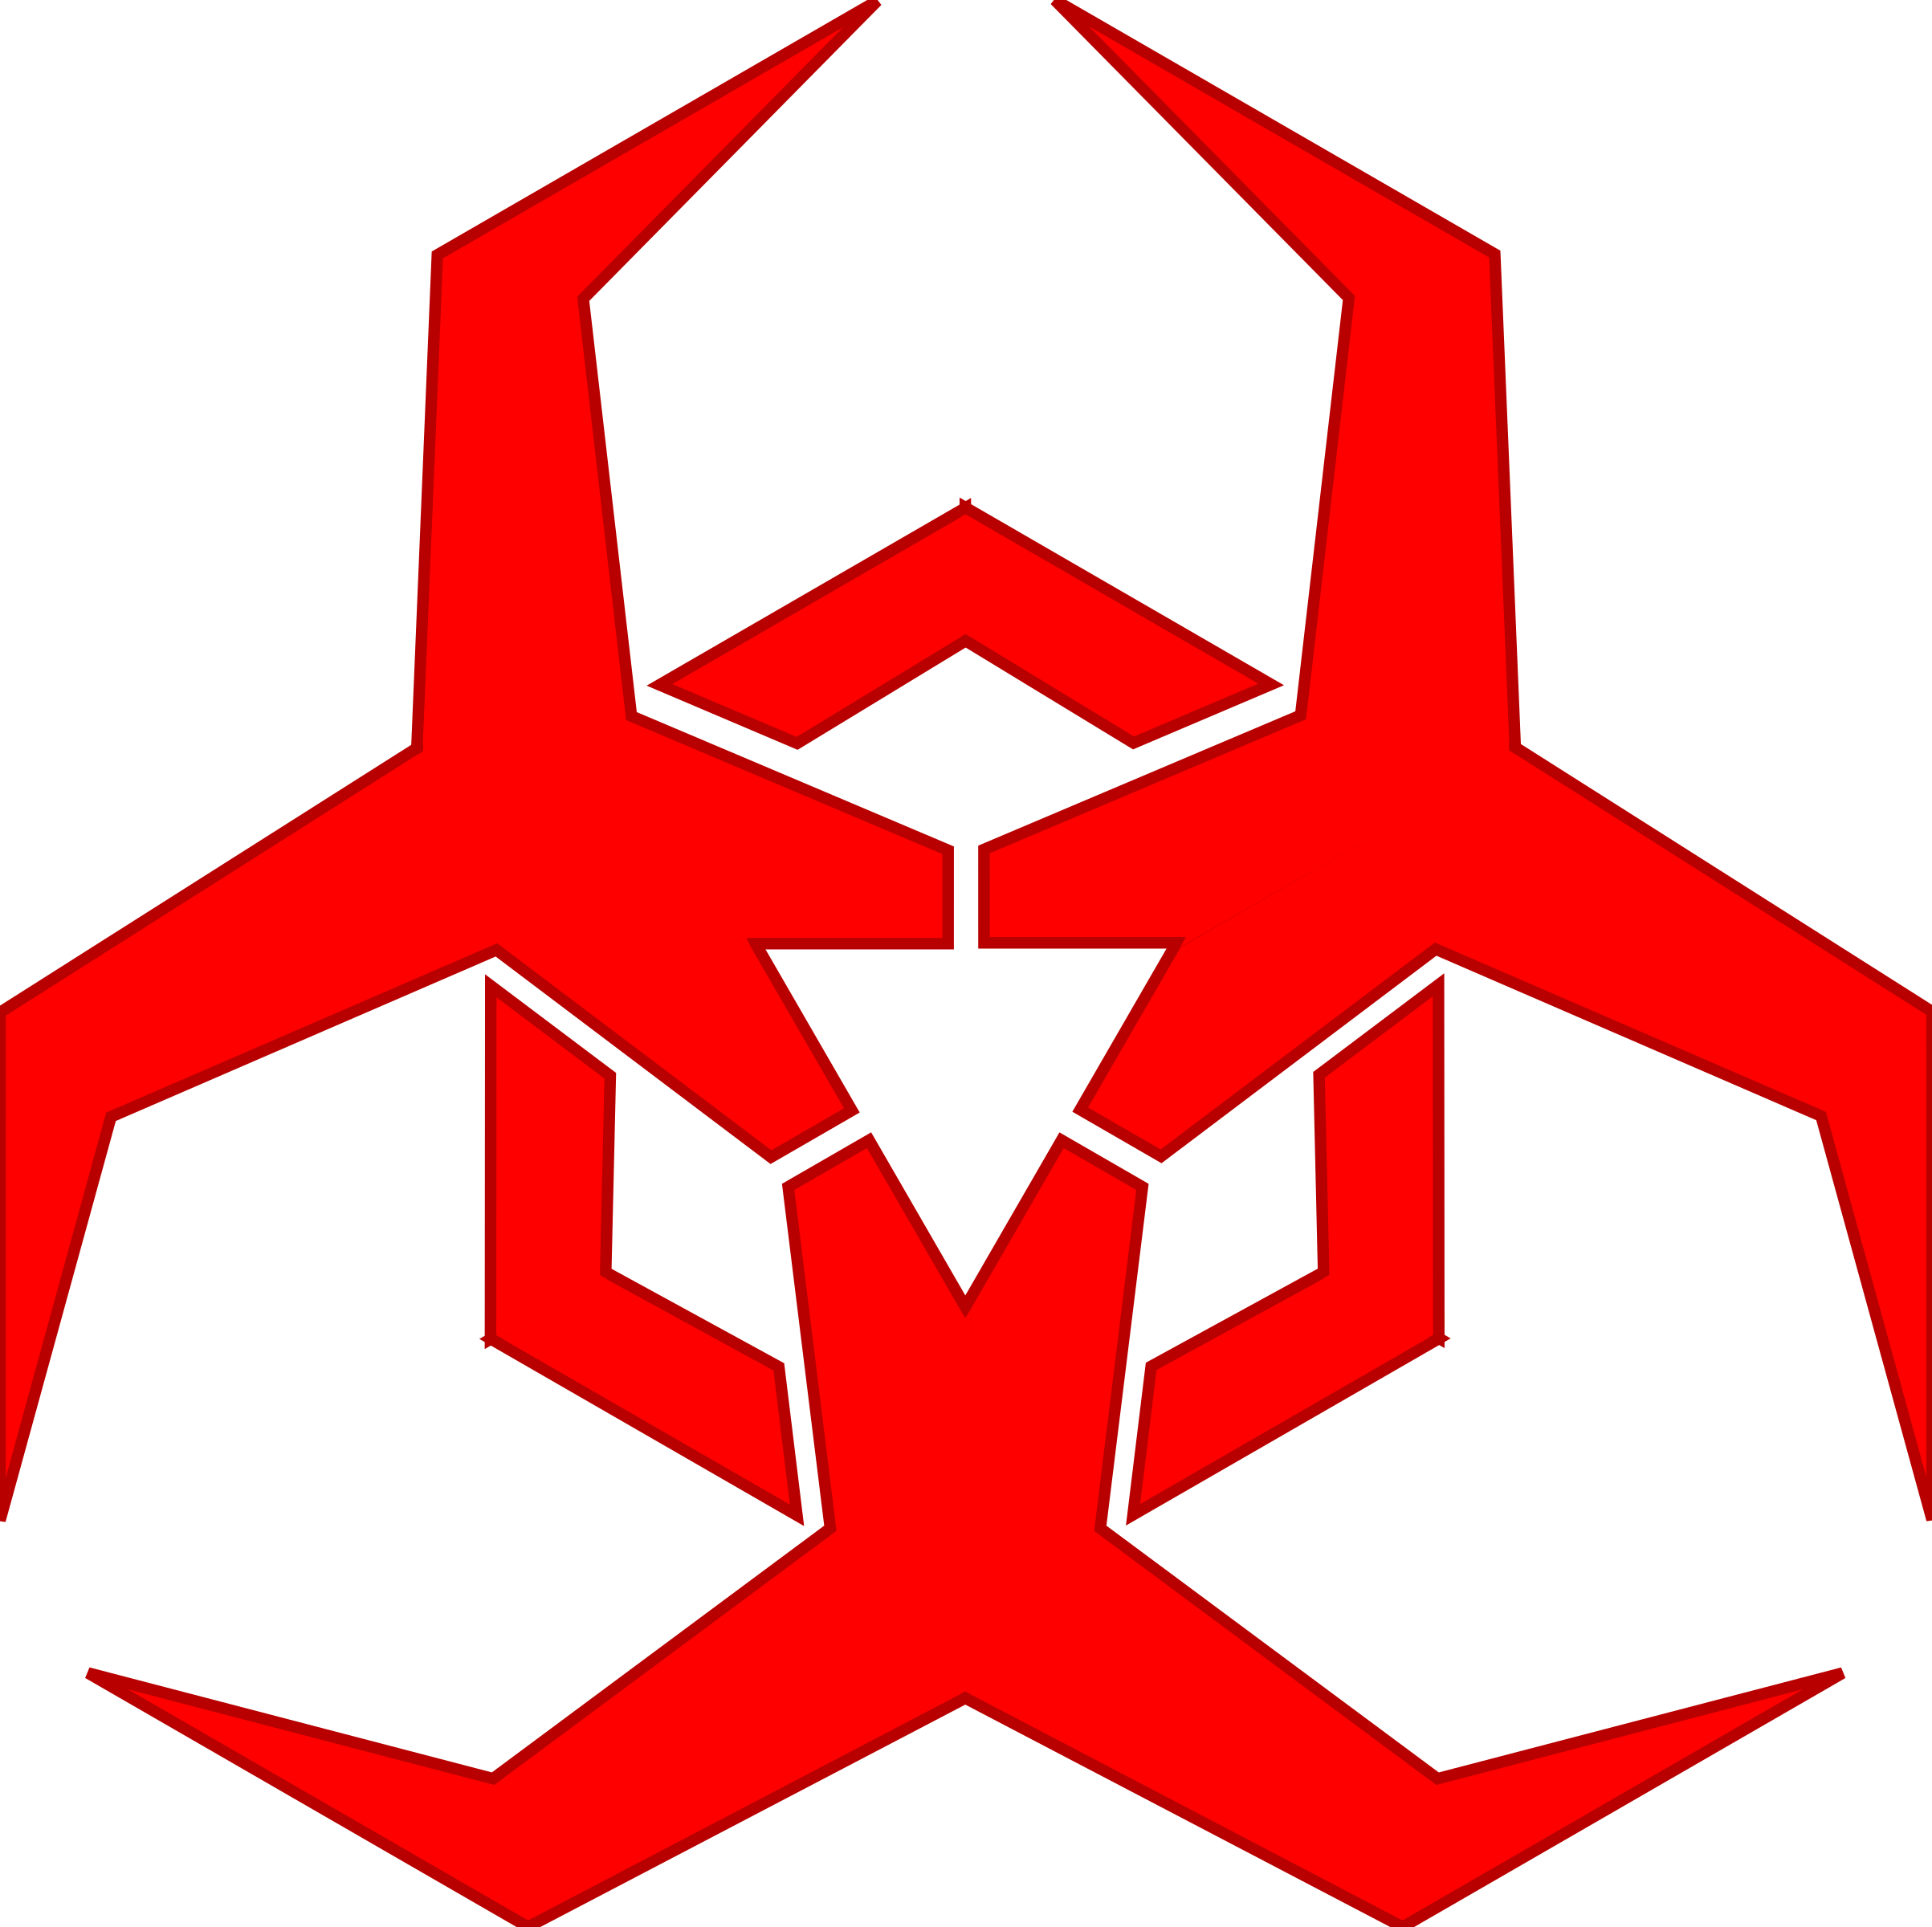 Malware hazard red by. Electronics clipart internet symbol